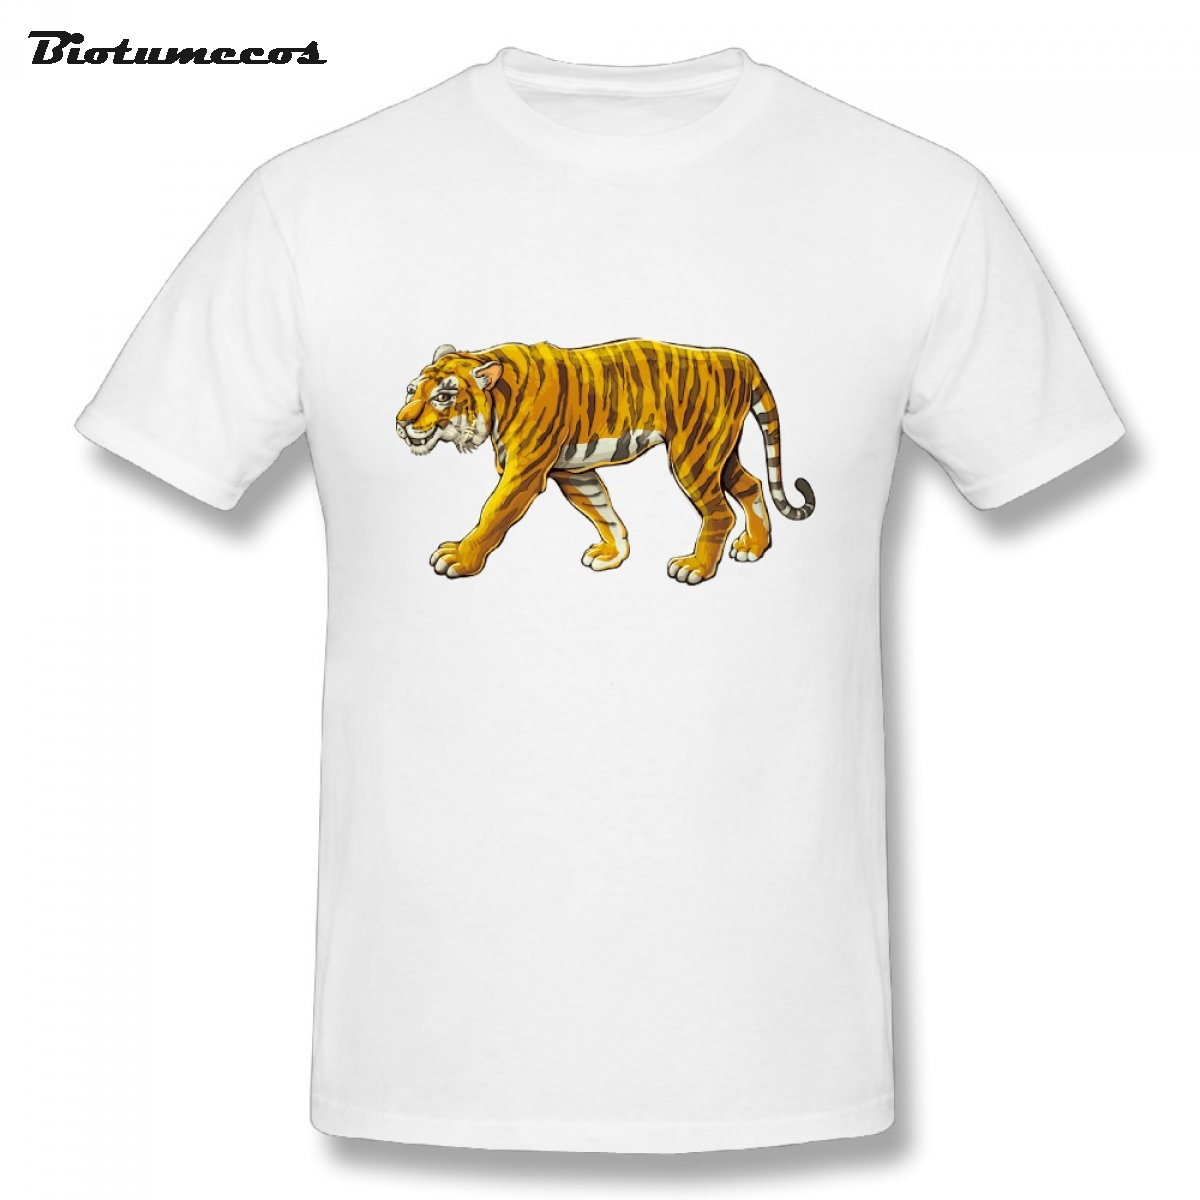 order cheap t shirts custom shirt